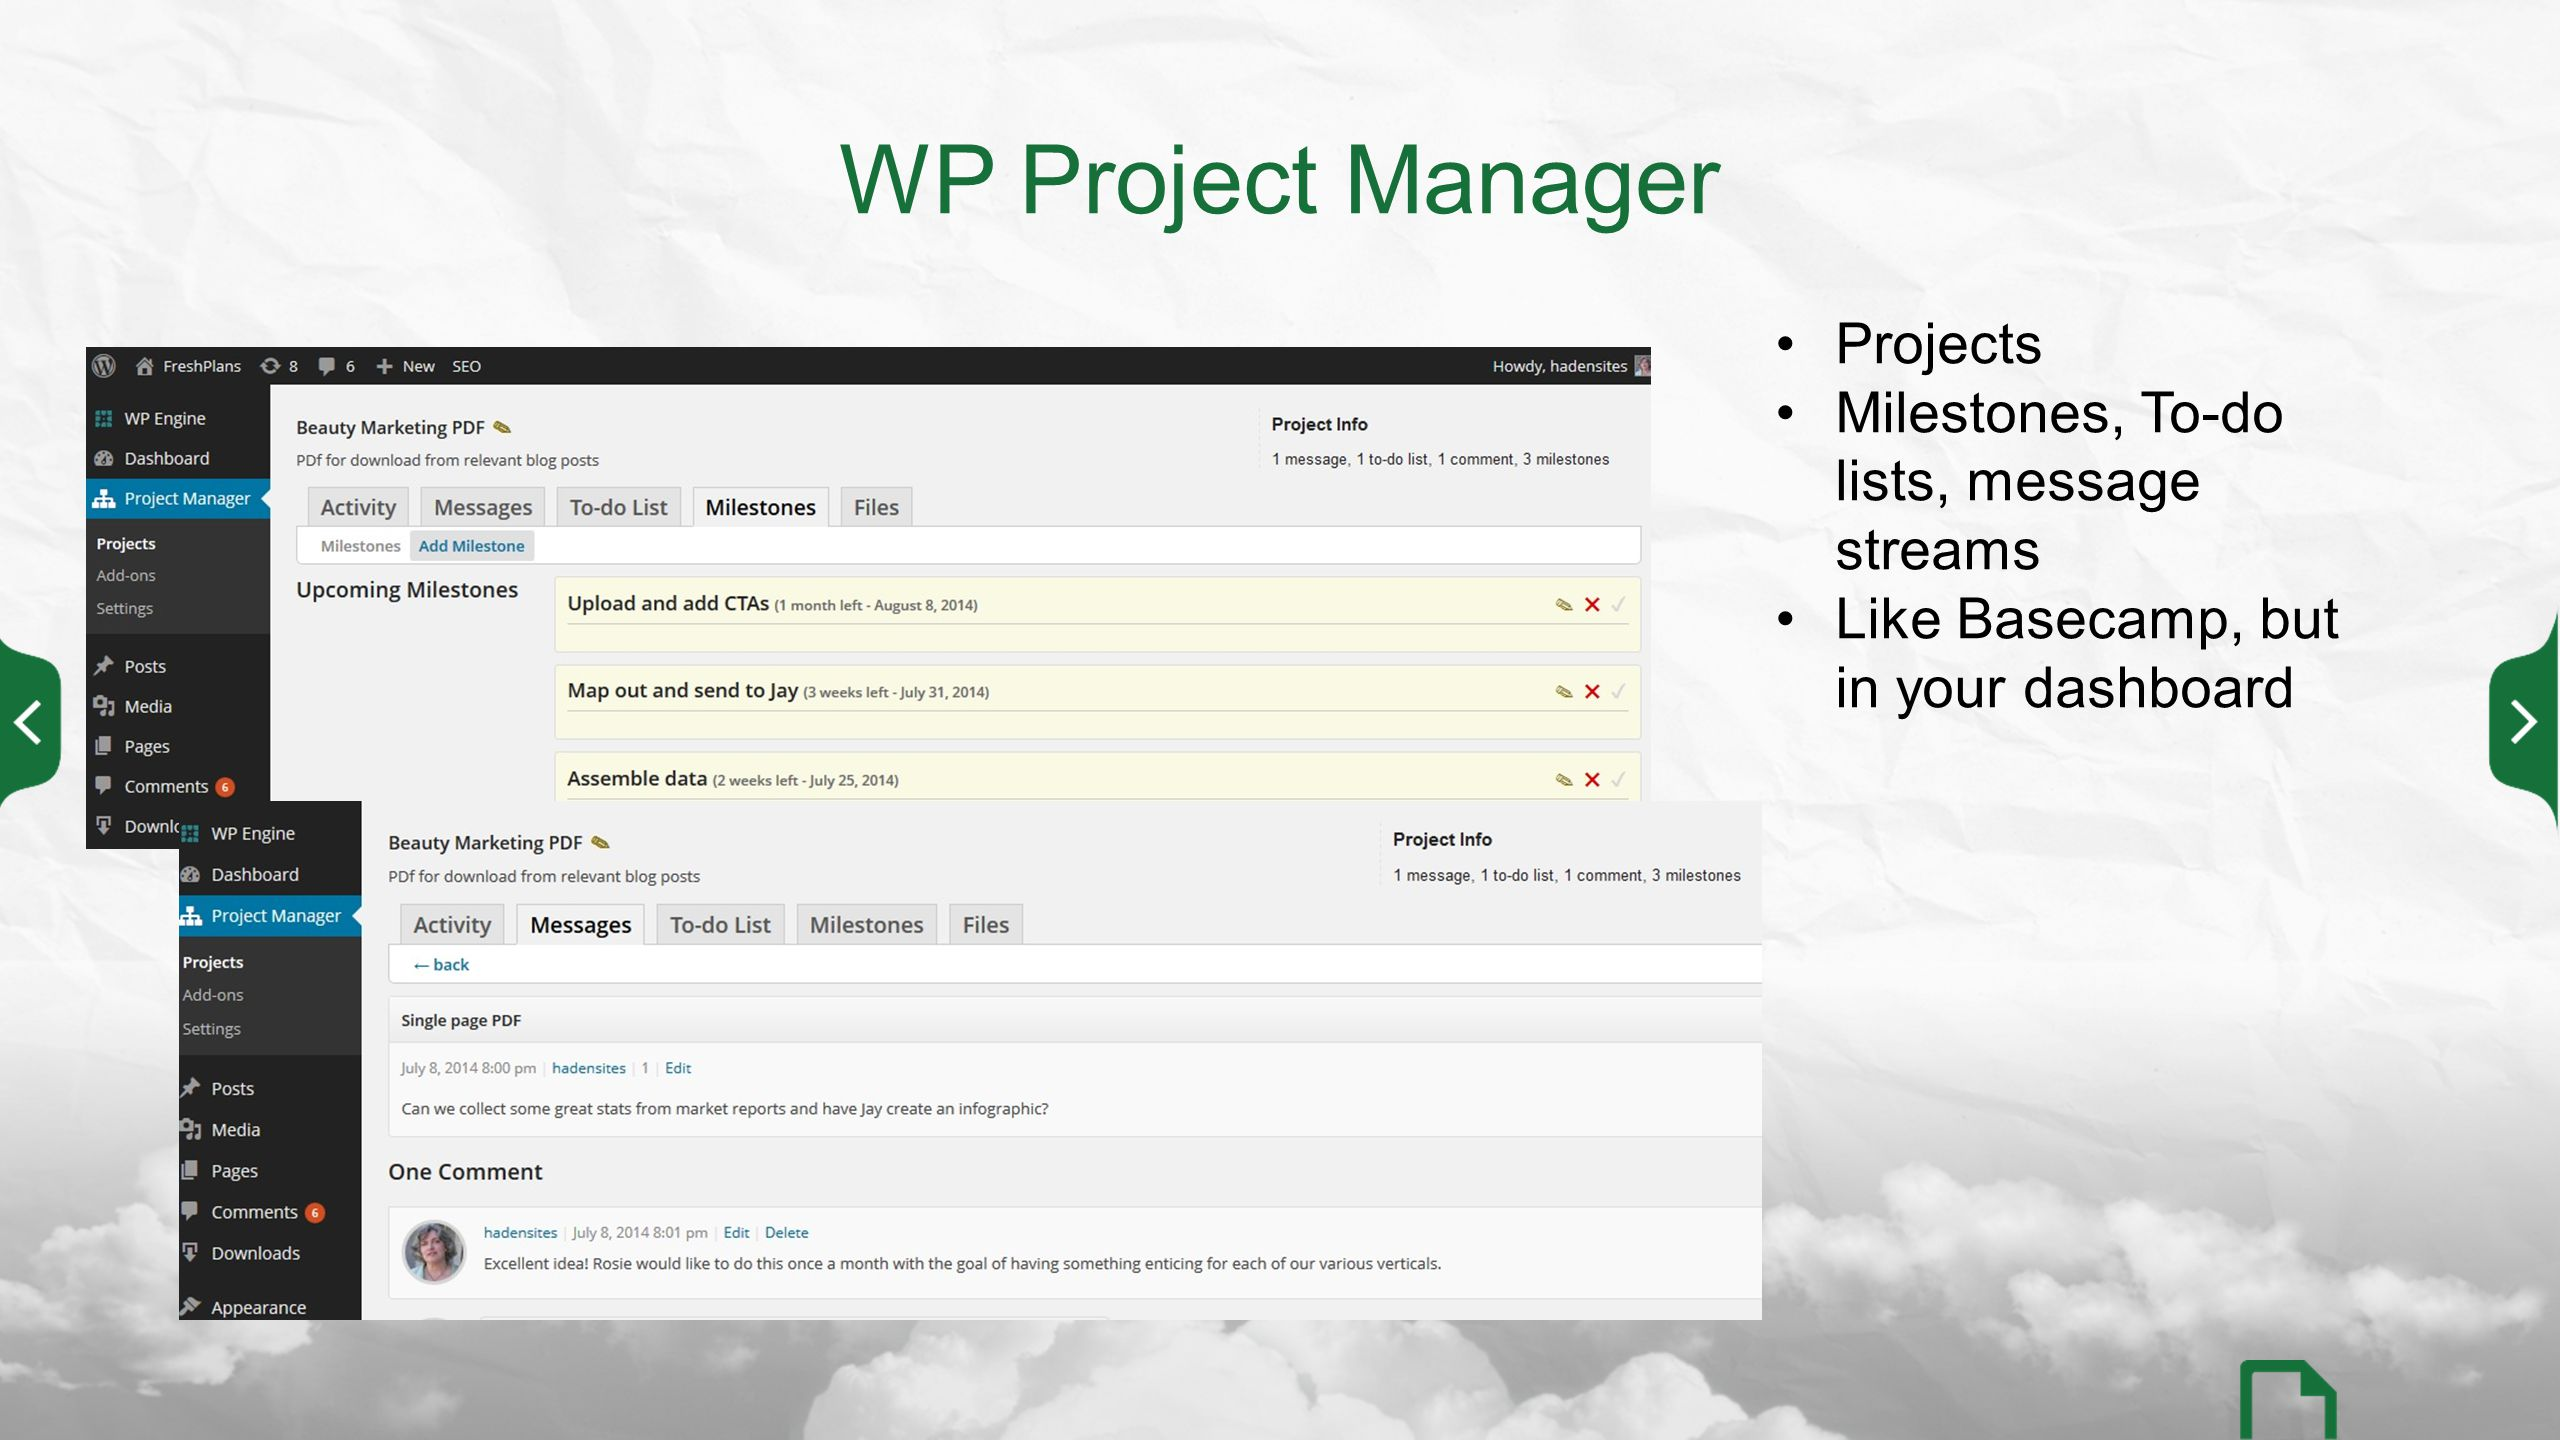 WP Project Manager Projects Milestones, To-do lists, message streams Like Basecamp, but in your dashboard